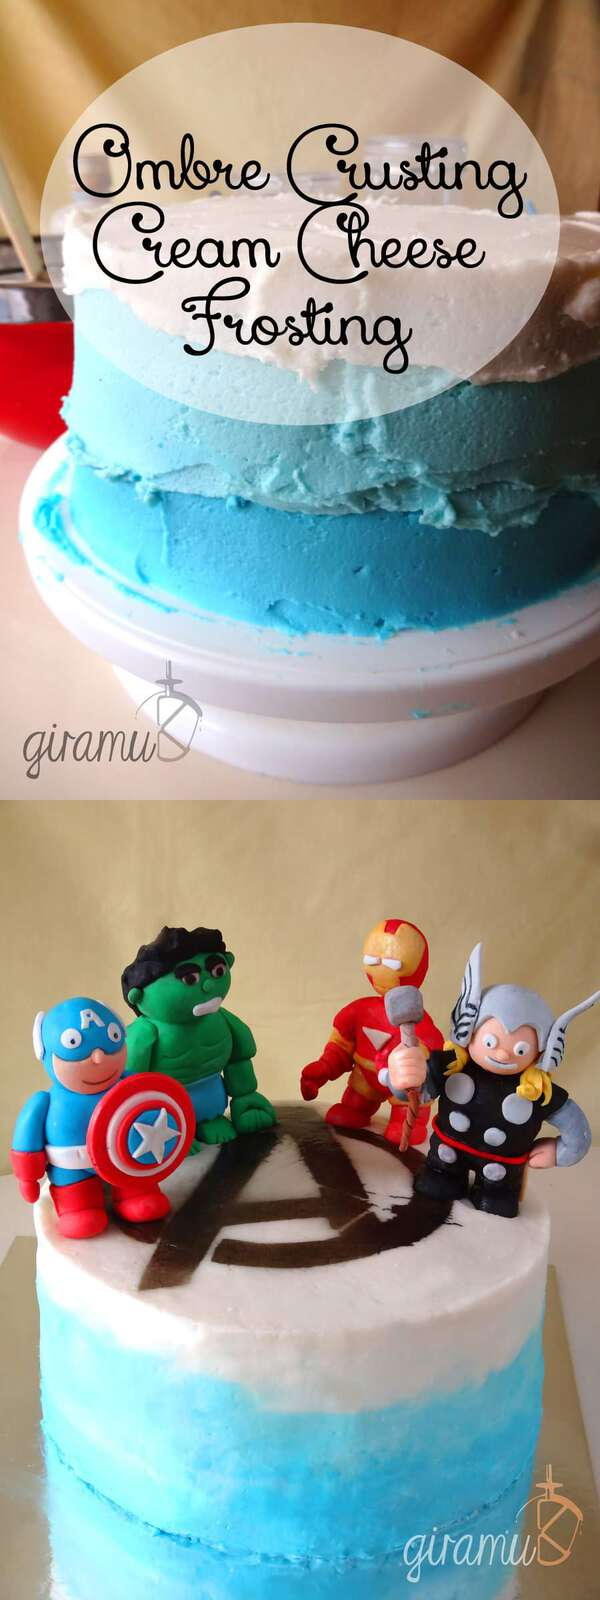 Ombre Crusting Cream Cheese Frosting